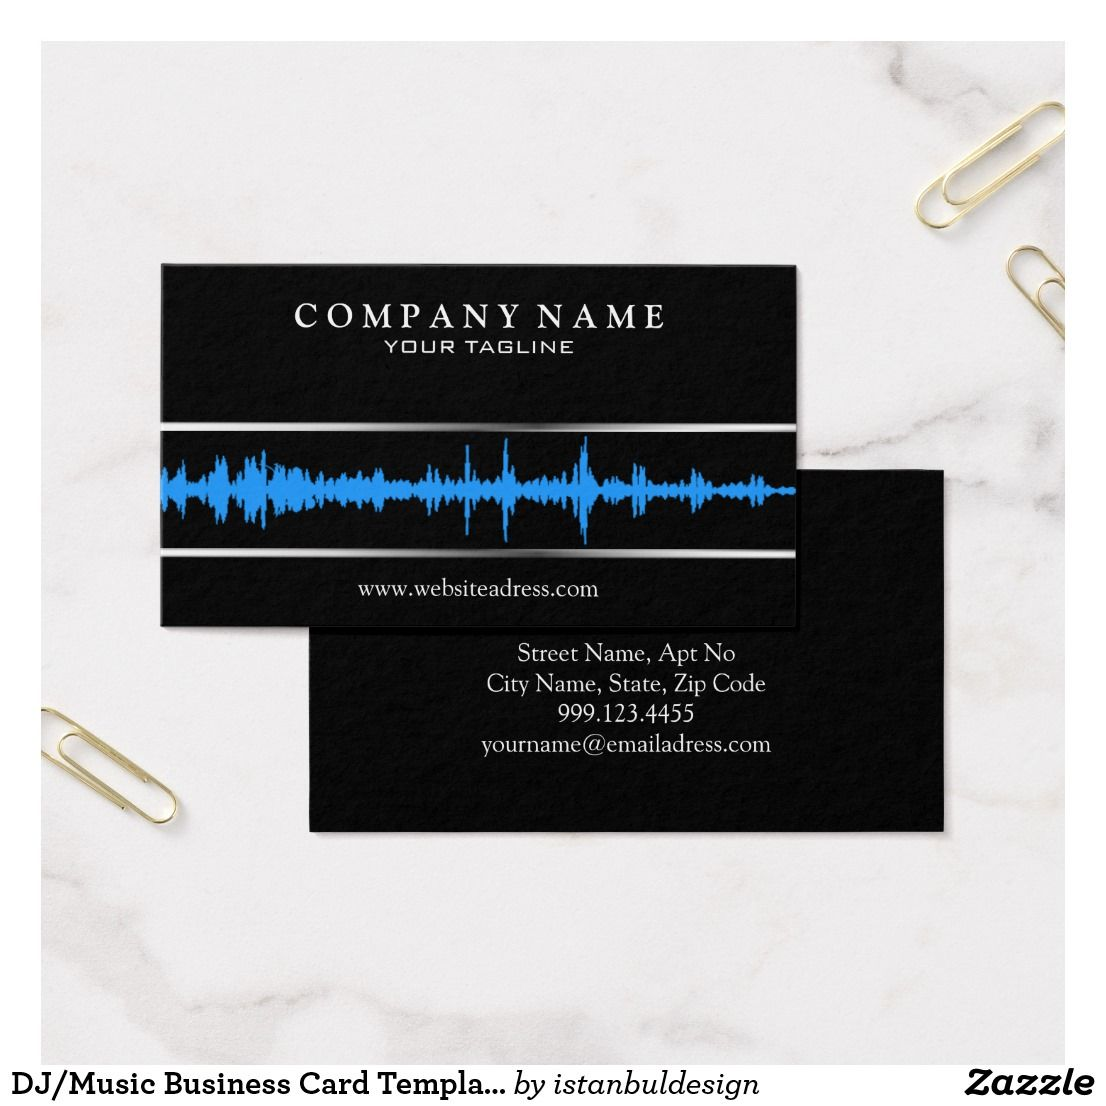 DJMusic Business Card Template Business Pinterest Card - Music business card template